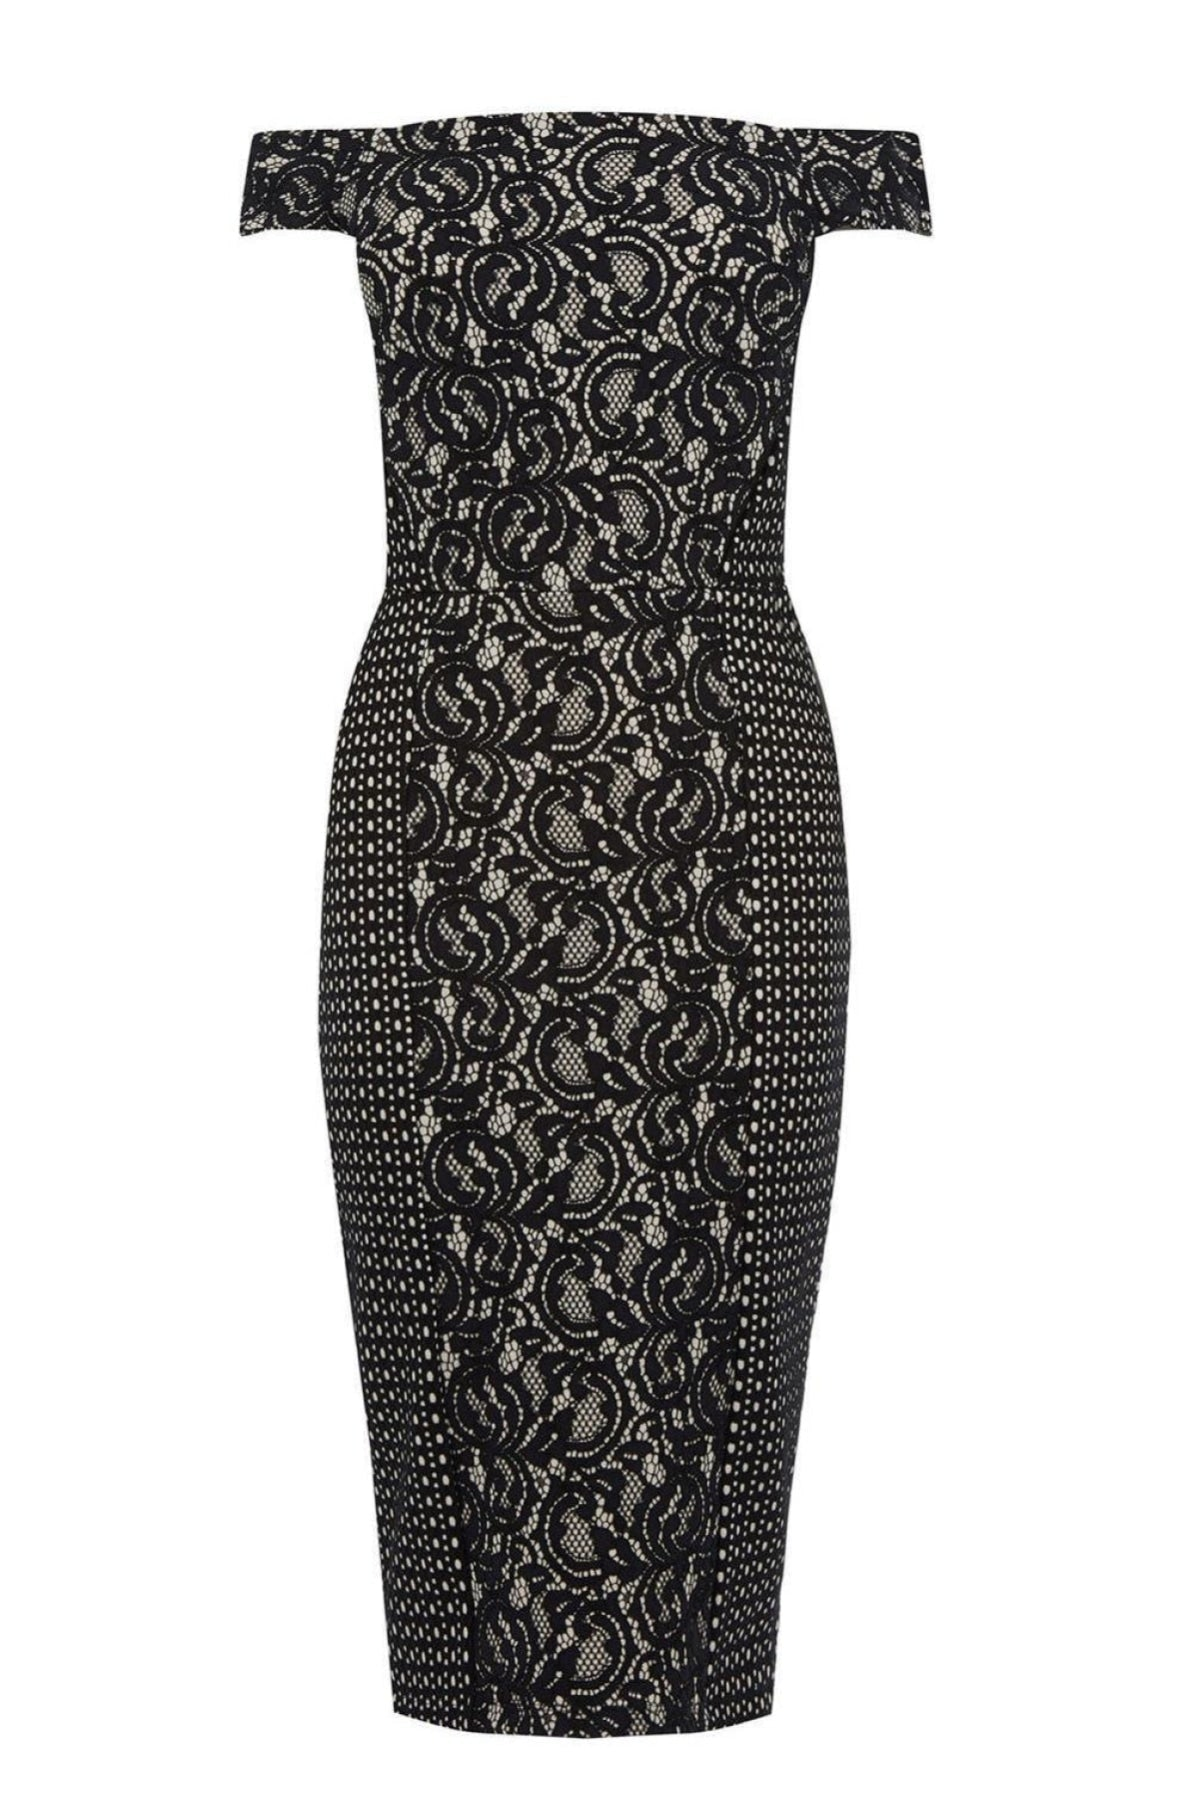 Warehouse Bardot Lace Pencil Dress | Secret Label